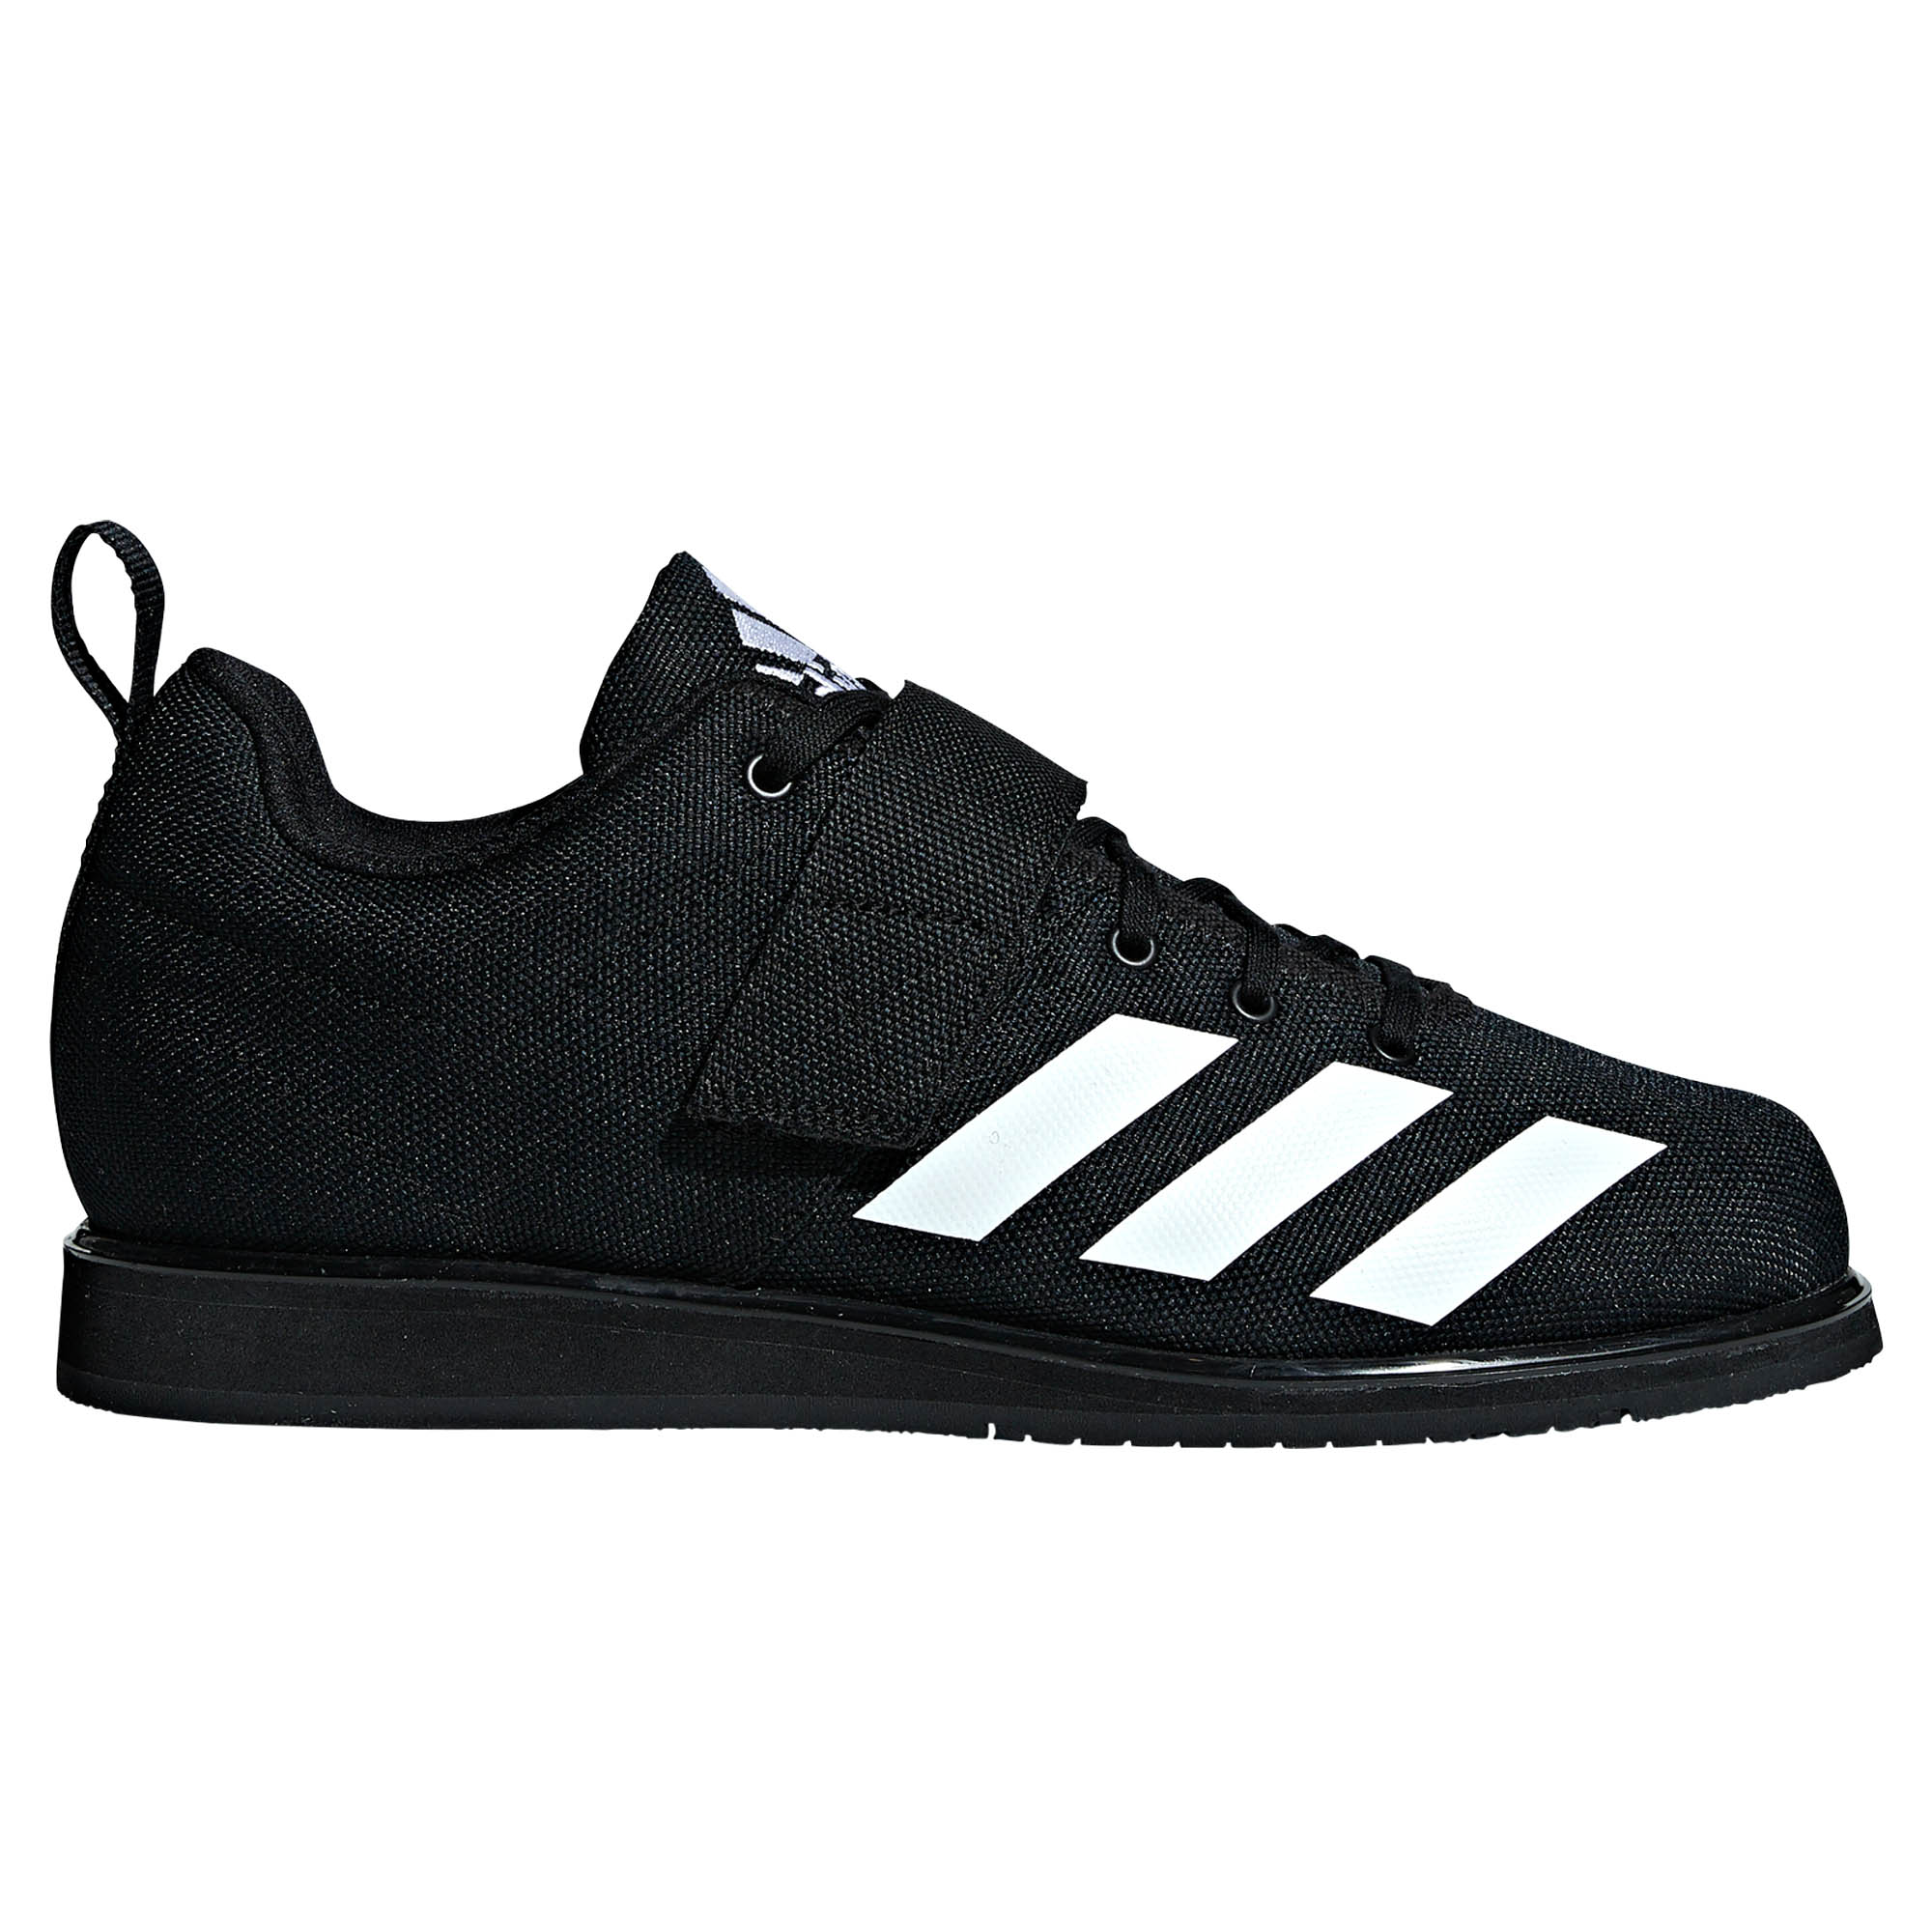 buy popular d8991 26227 Details about adidas Powerlift 4 Mens Adult Weightlifting Powerlifting Shoe  Black